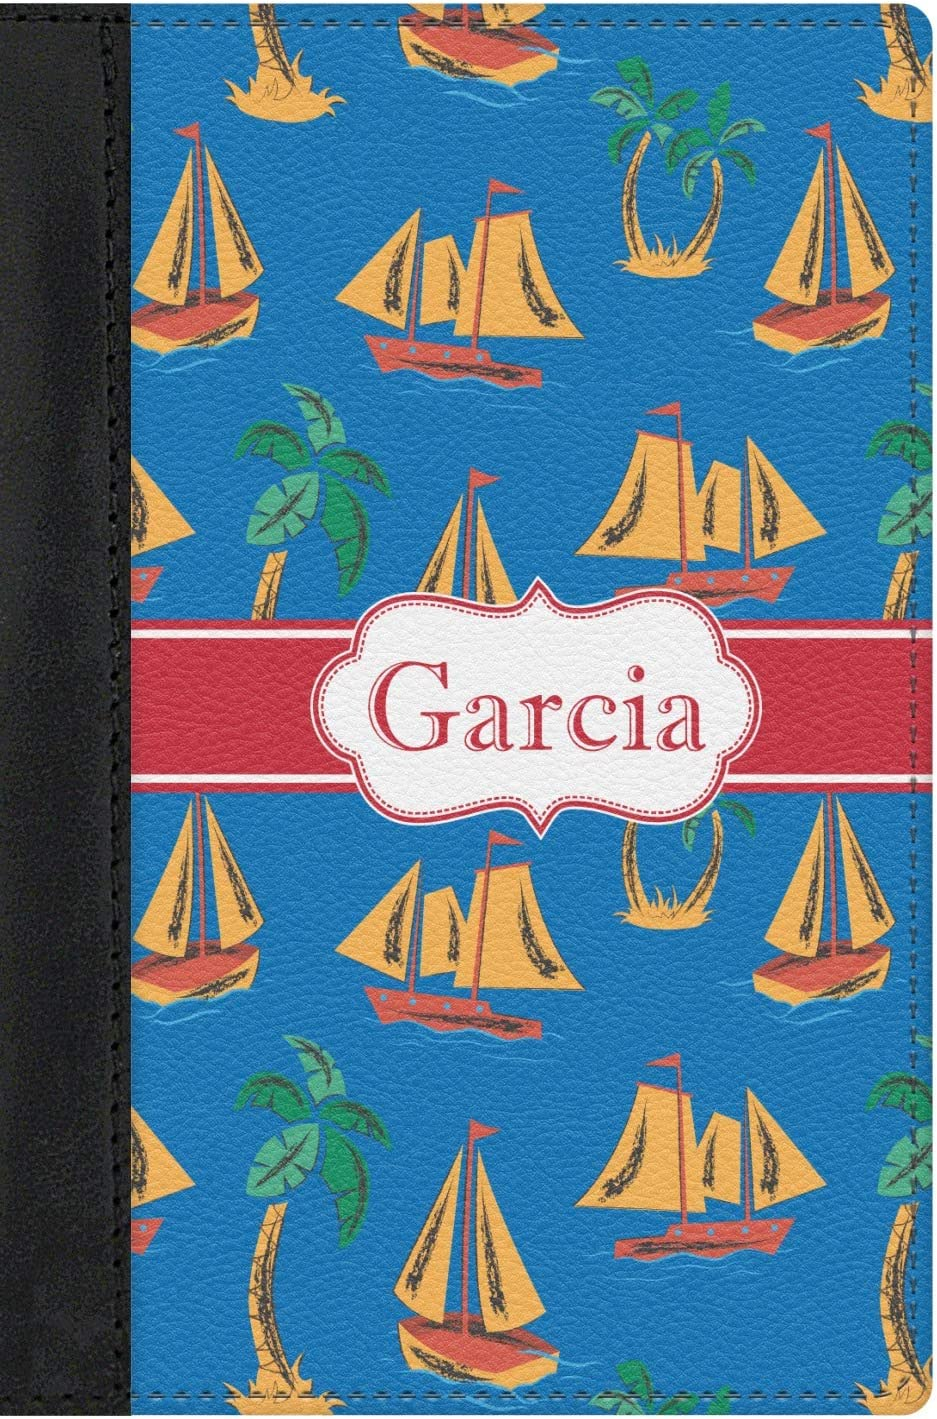 Personalized Boats /& Palm Trees Genuine Leather Passport Cover